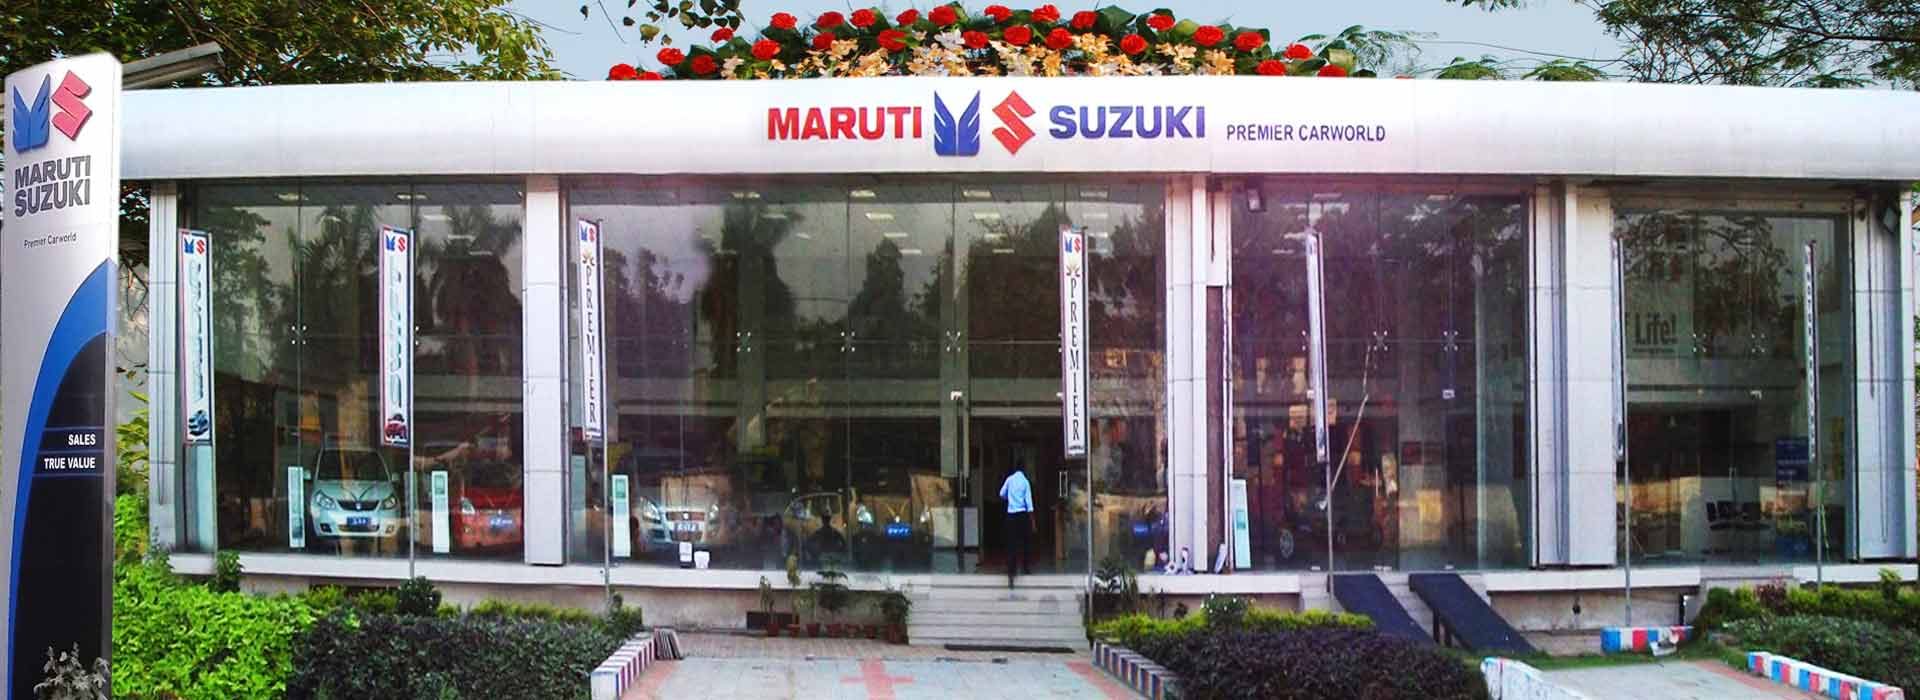 Maruti Suzuki Cars Dealers And Showroom In Kolkata